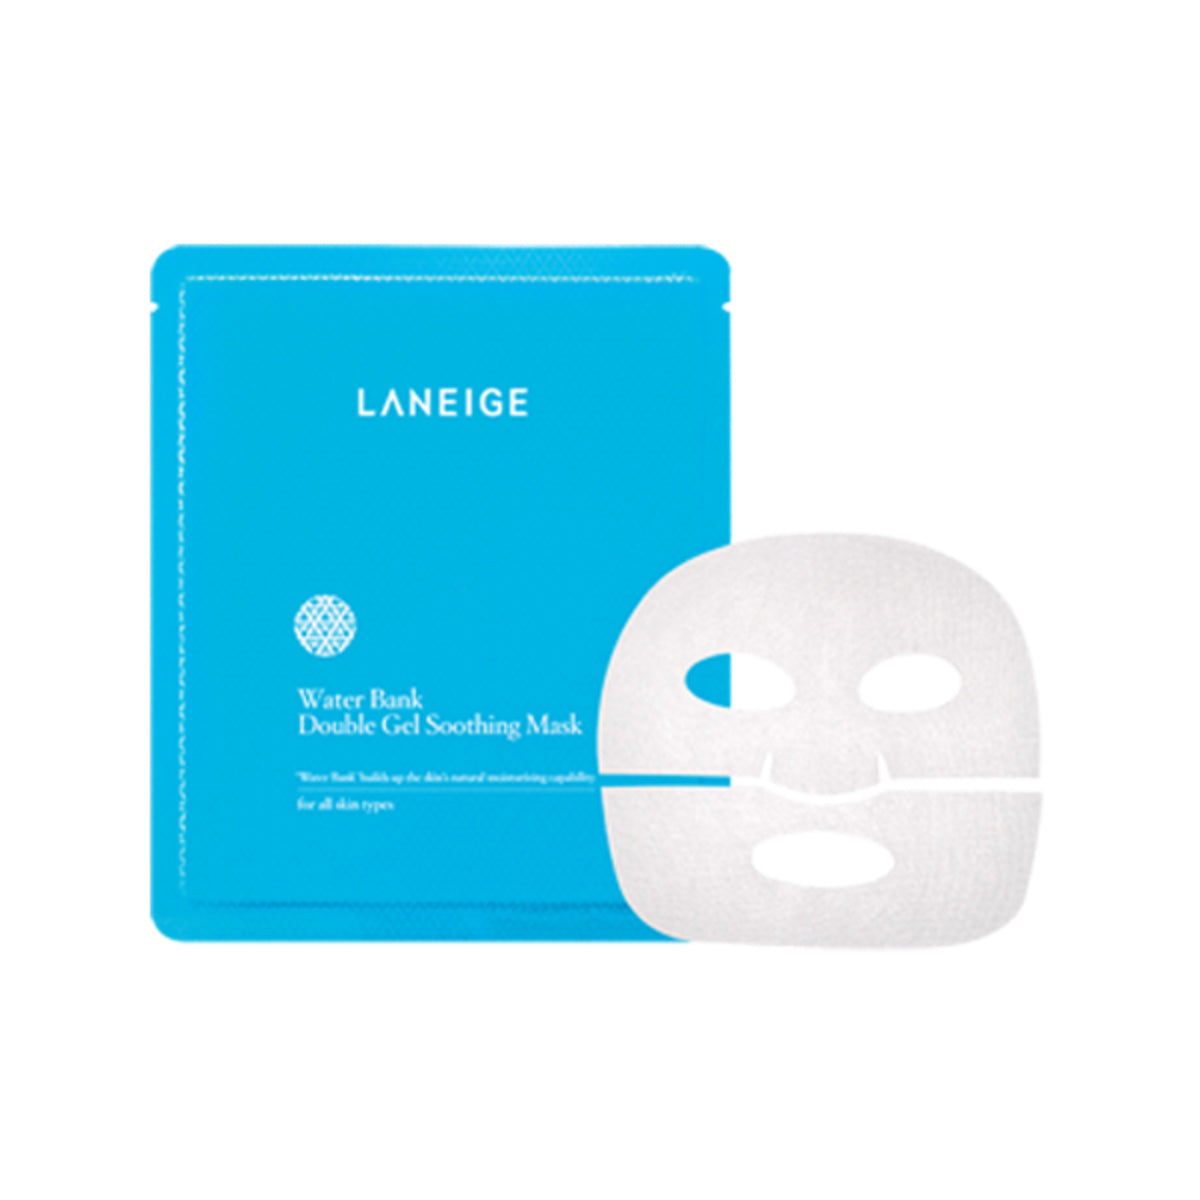 Water Bank Double Gel Soothing Mask EX